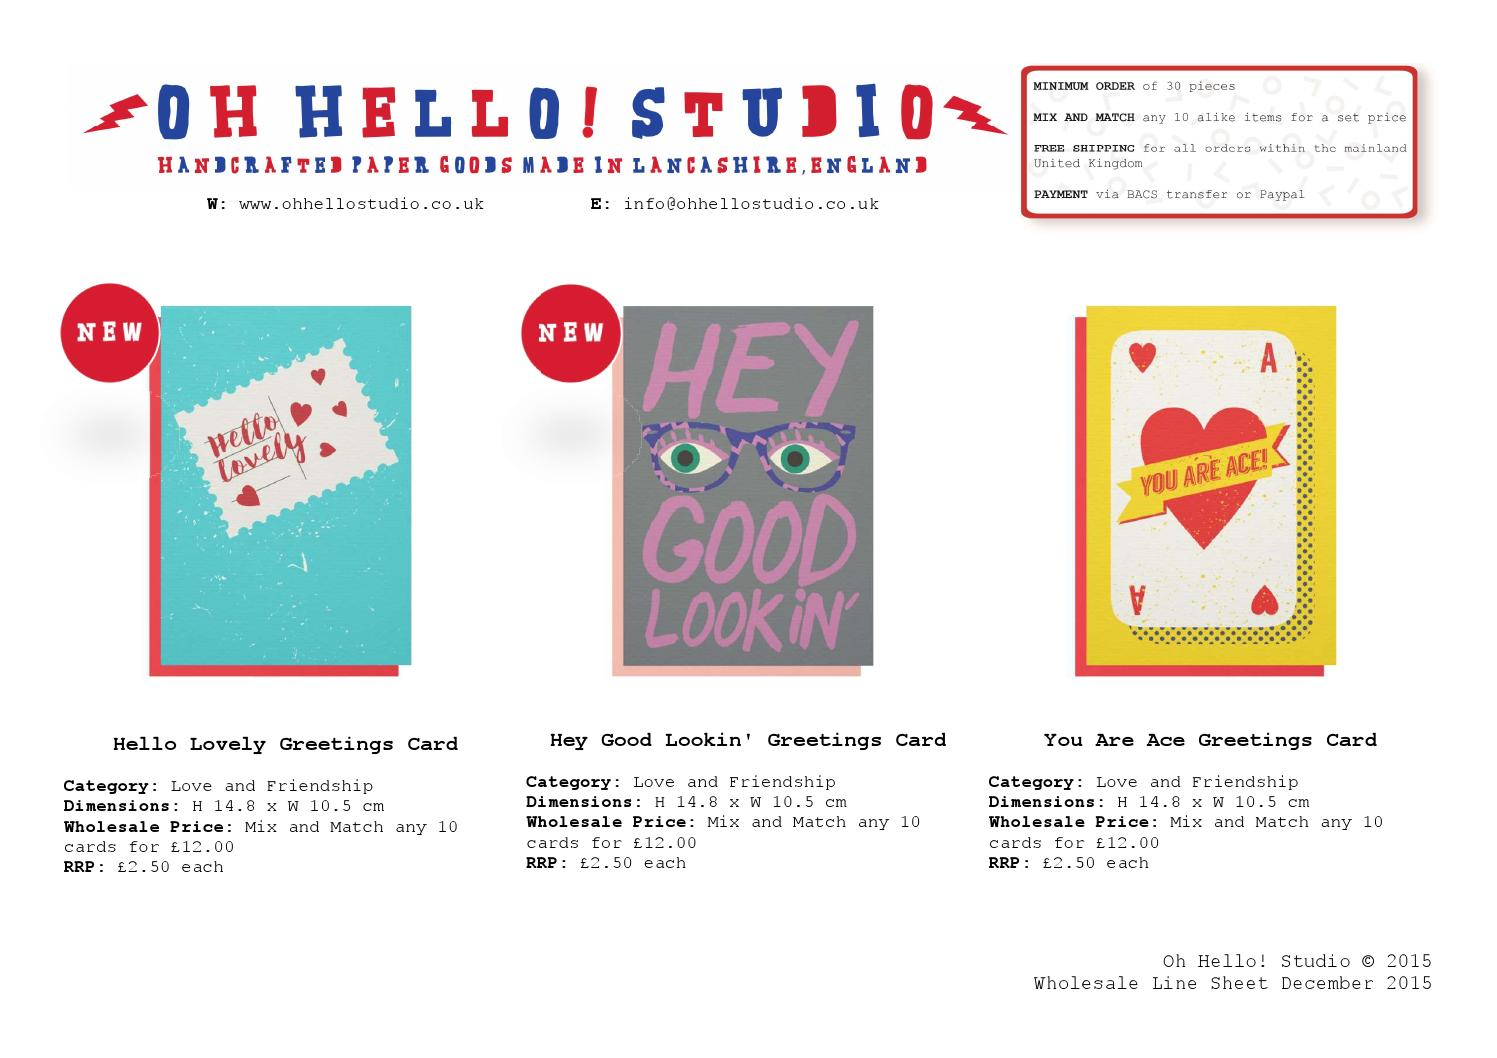 Oh Hello Studio Wholesale Line Sheet Dec 15 By Oh Hello Studio Issuu